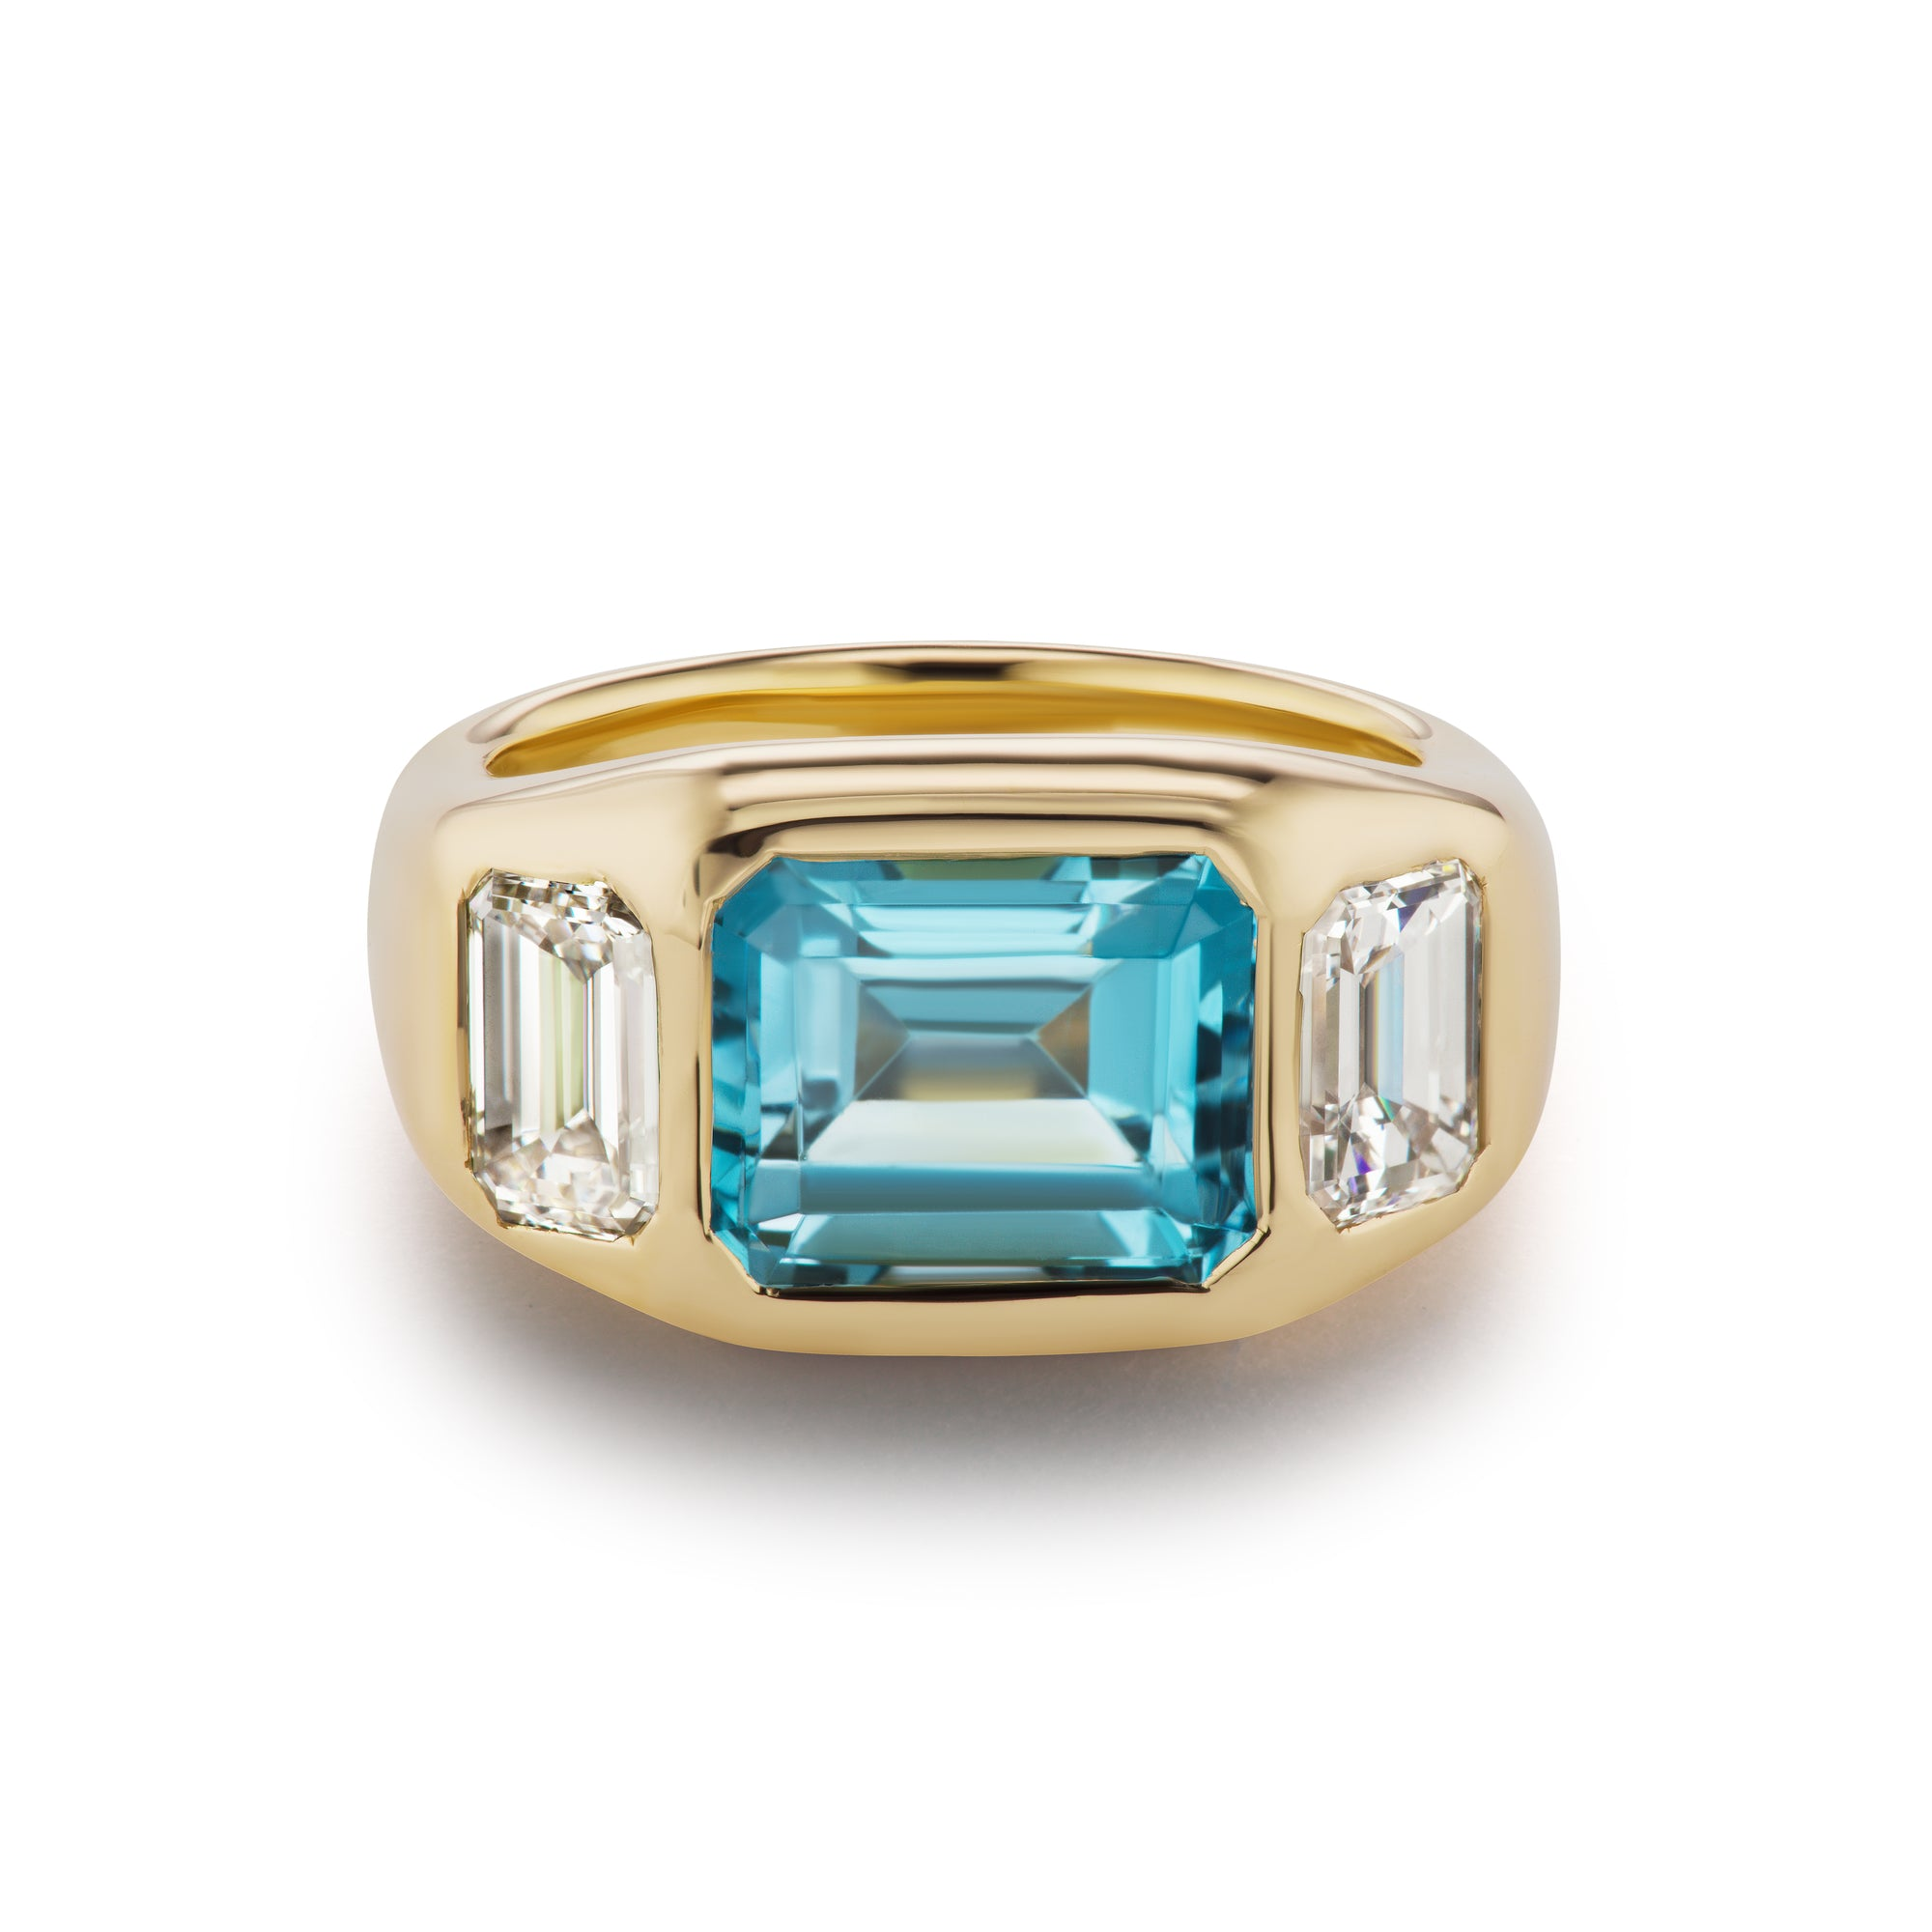 One-of-a-Kind Aquamarine and Diamond Gypsy Ring